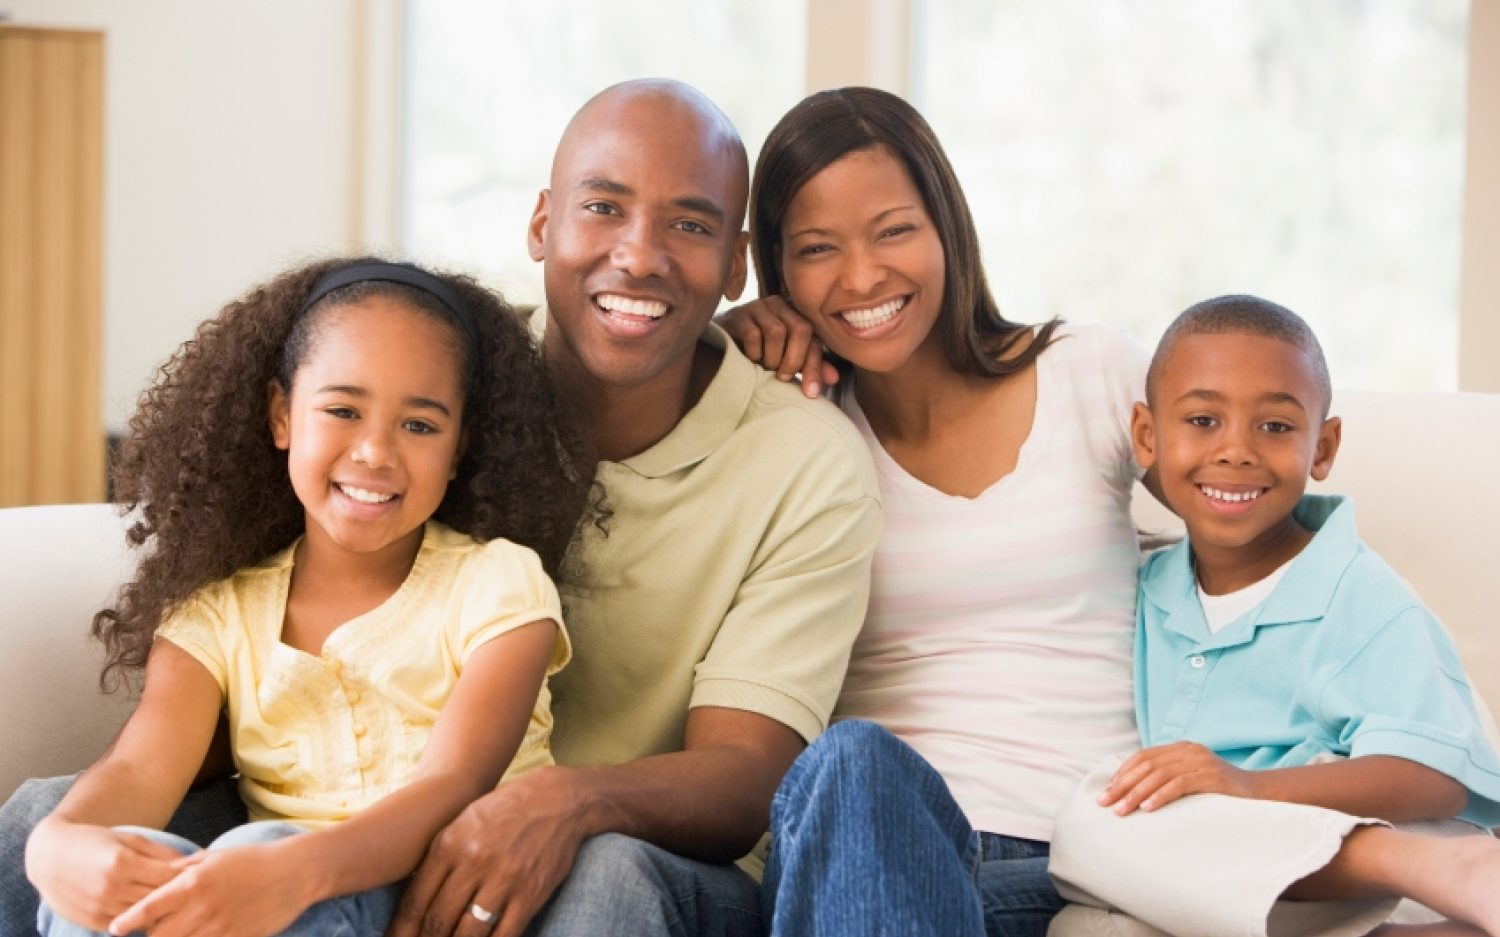 CDC: Children do best with two biological parents